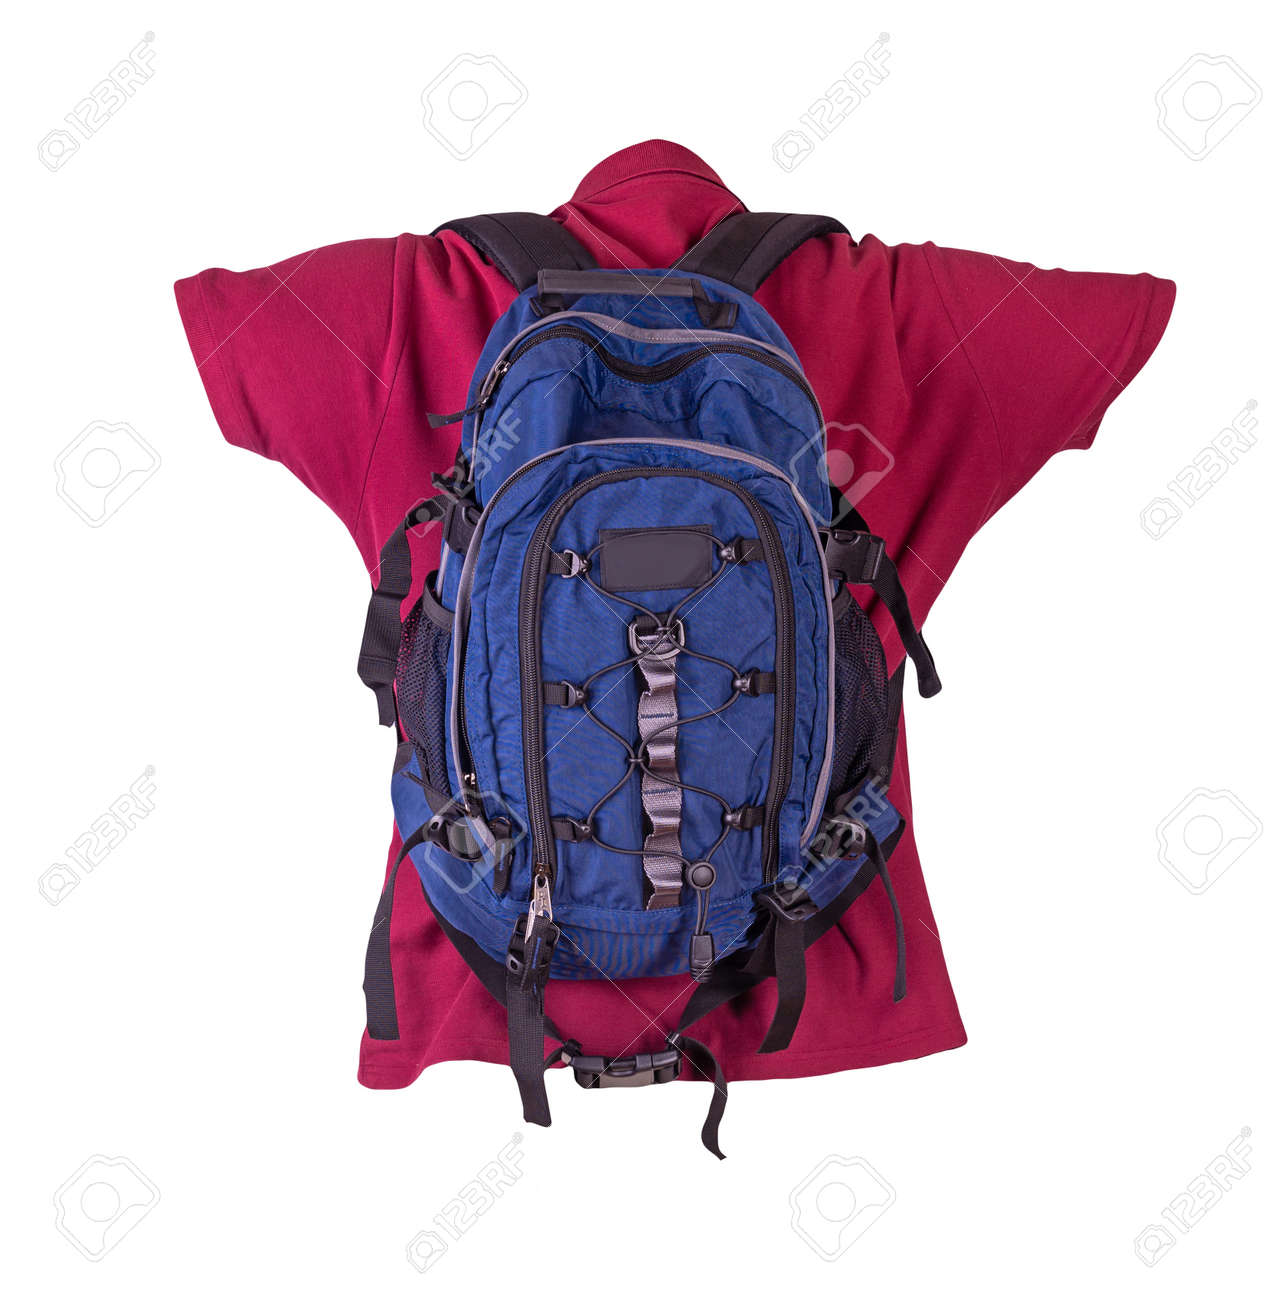 blue backpack dressed for burgundy t-shirt isolated on a white background. backpack and male sweater view from the back - 172144316